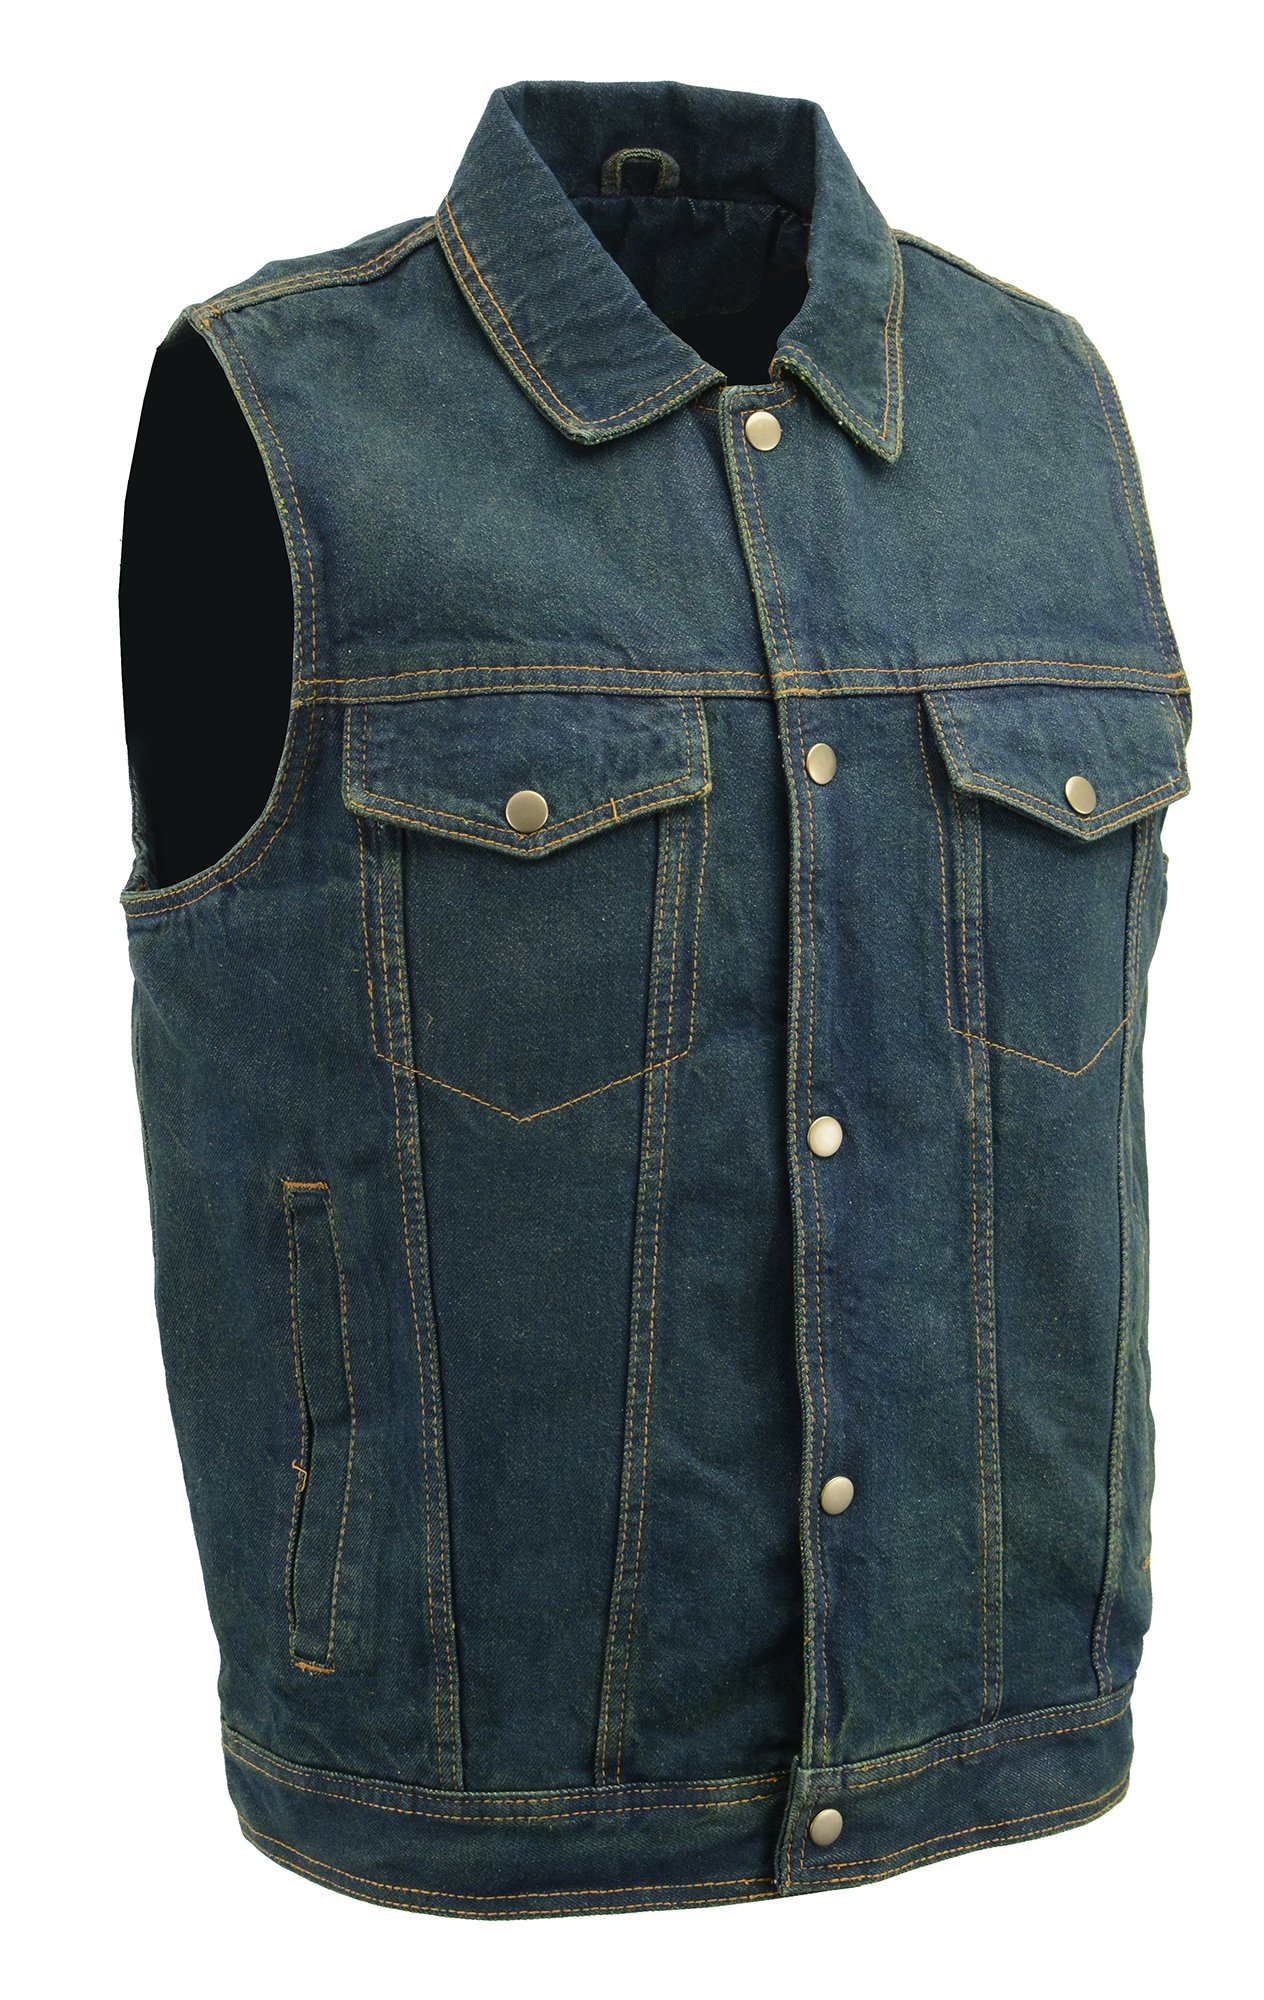 M-BOSS MOTORCYCLE APPAREL-BOS13006-BLUE-Mens blue denim jean vest.-BLUE-LARGE